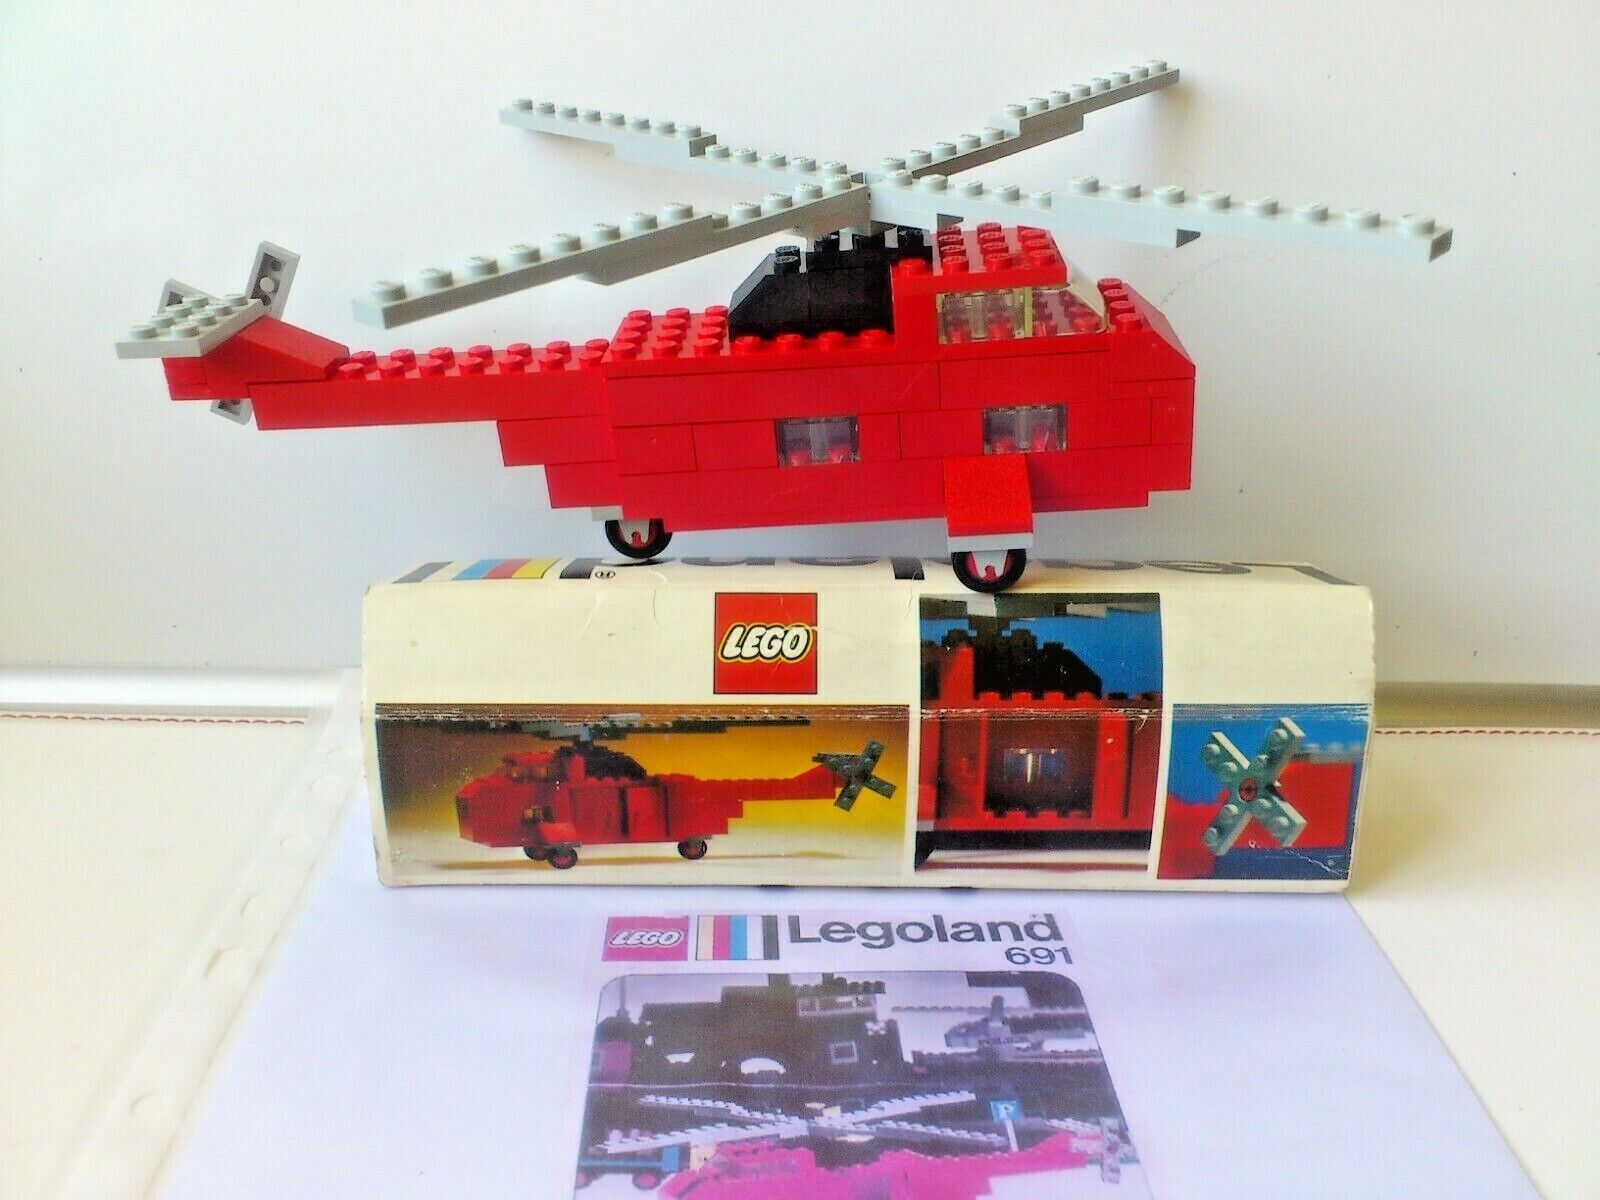 Vintage Legoland set no 691 from 1974 with original box and photocopy manual..